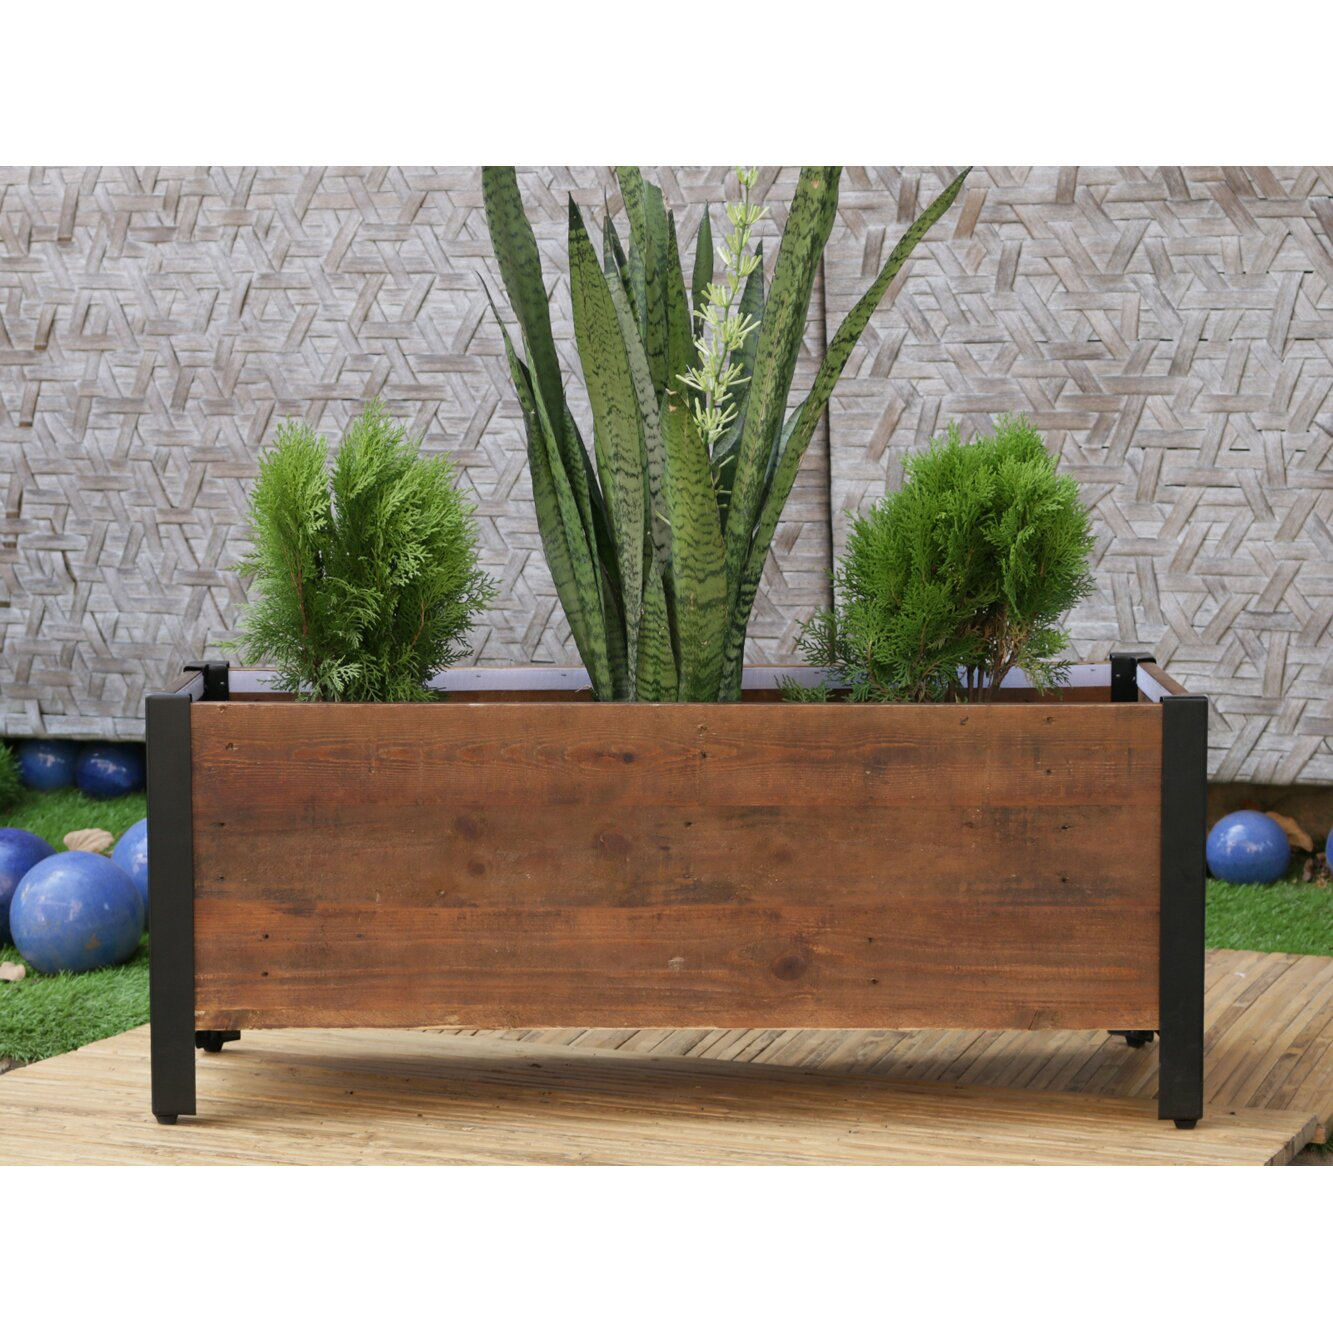 Grapevine Rectangular Urban Garden Recycled Wood Planter